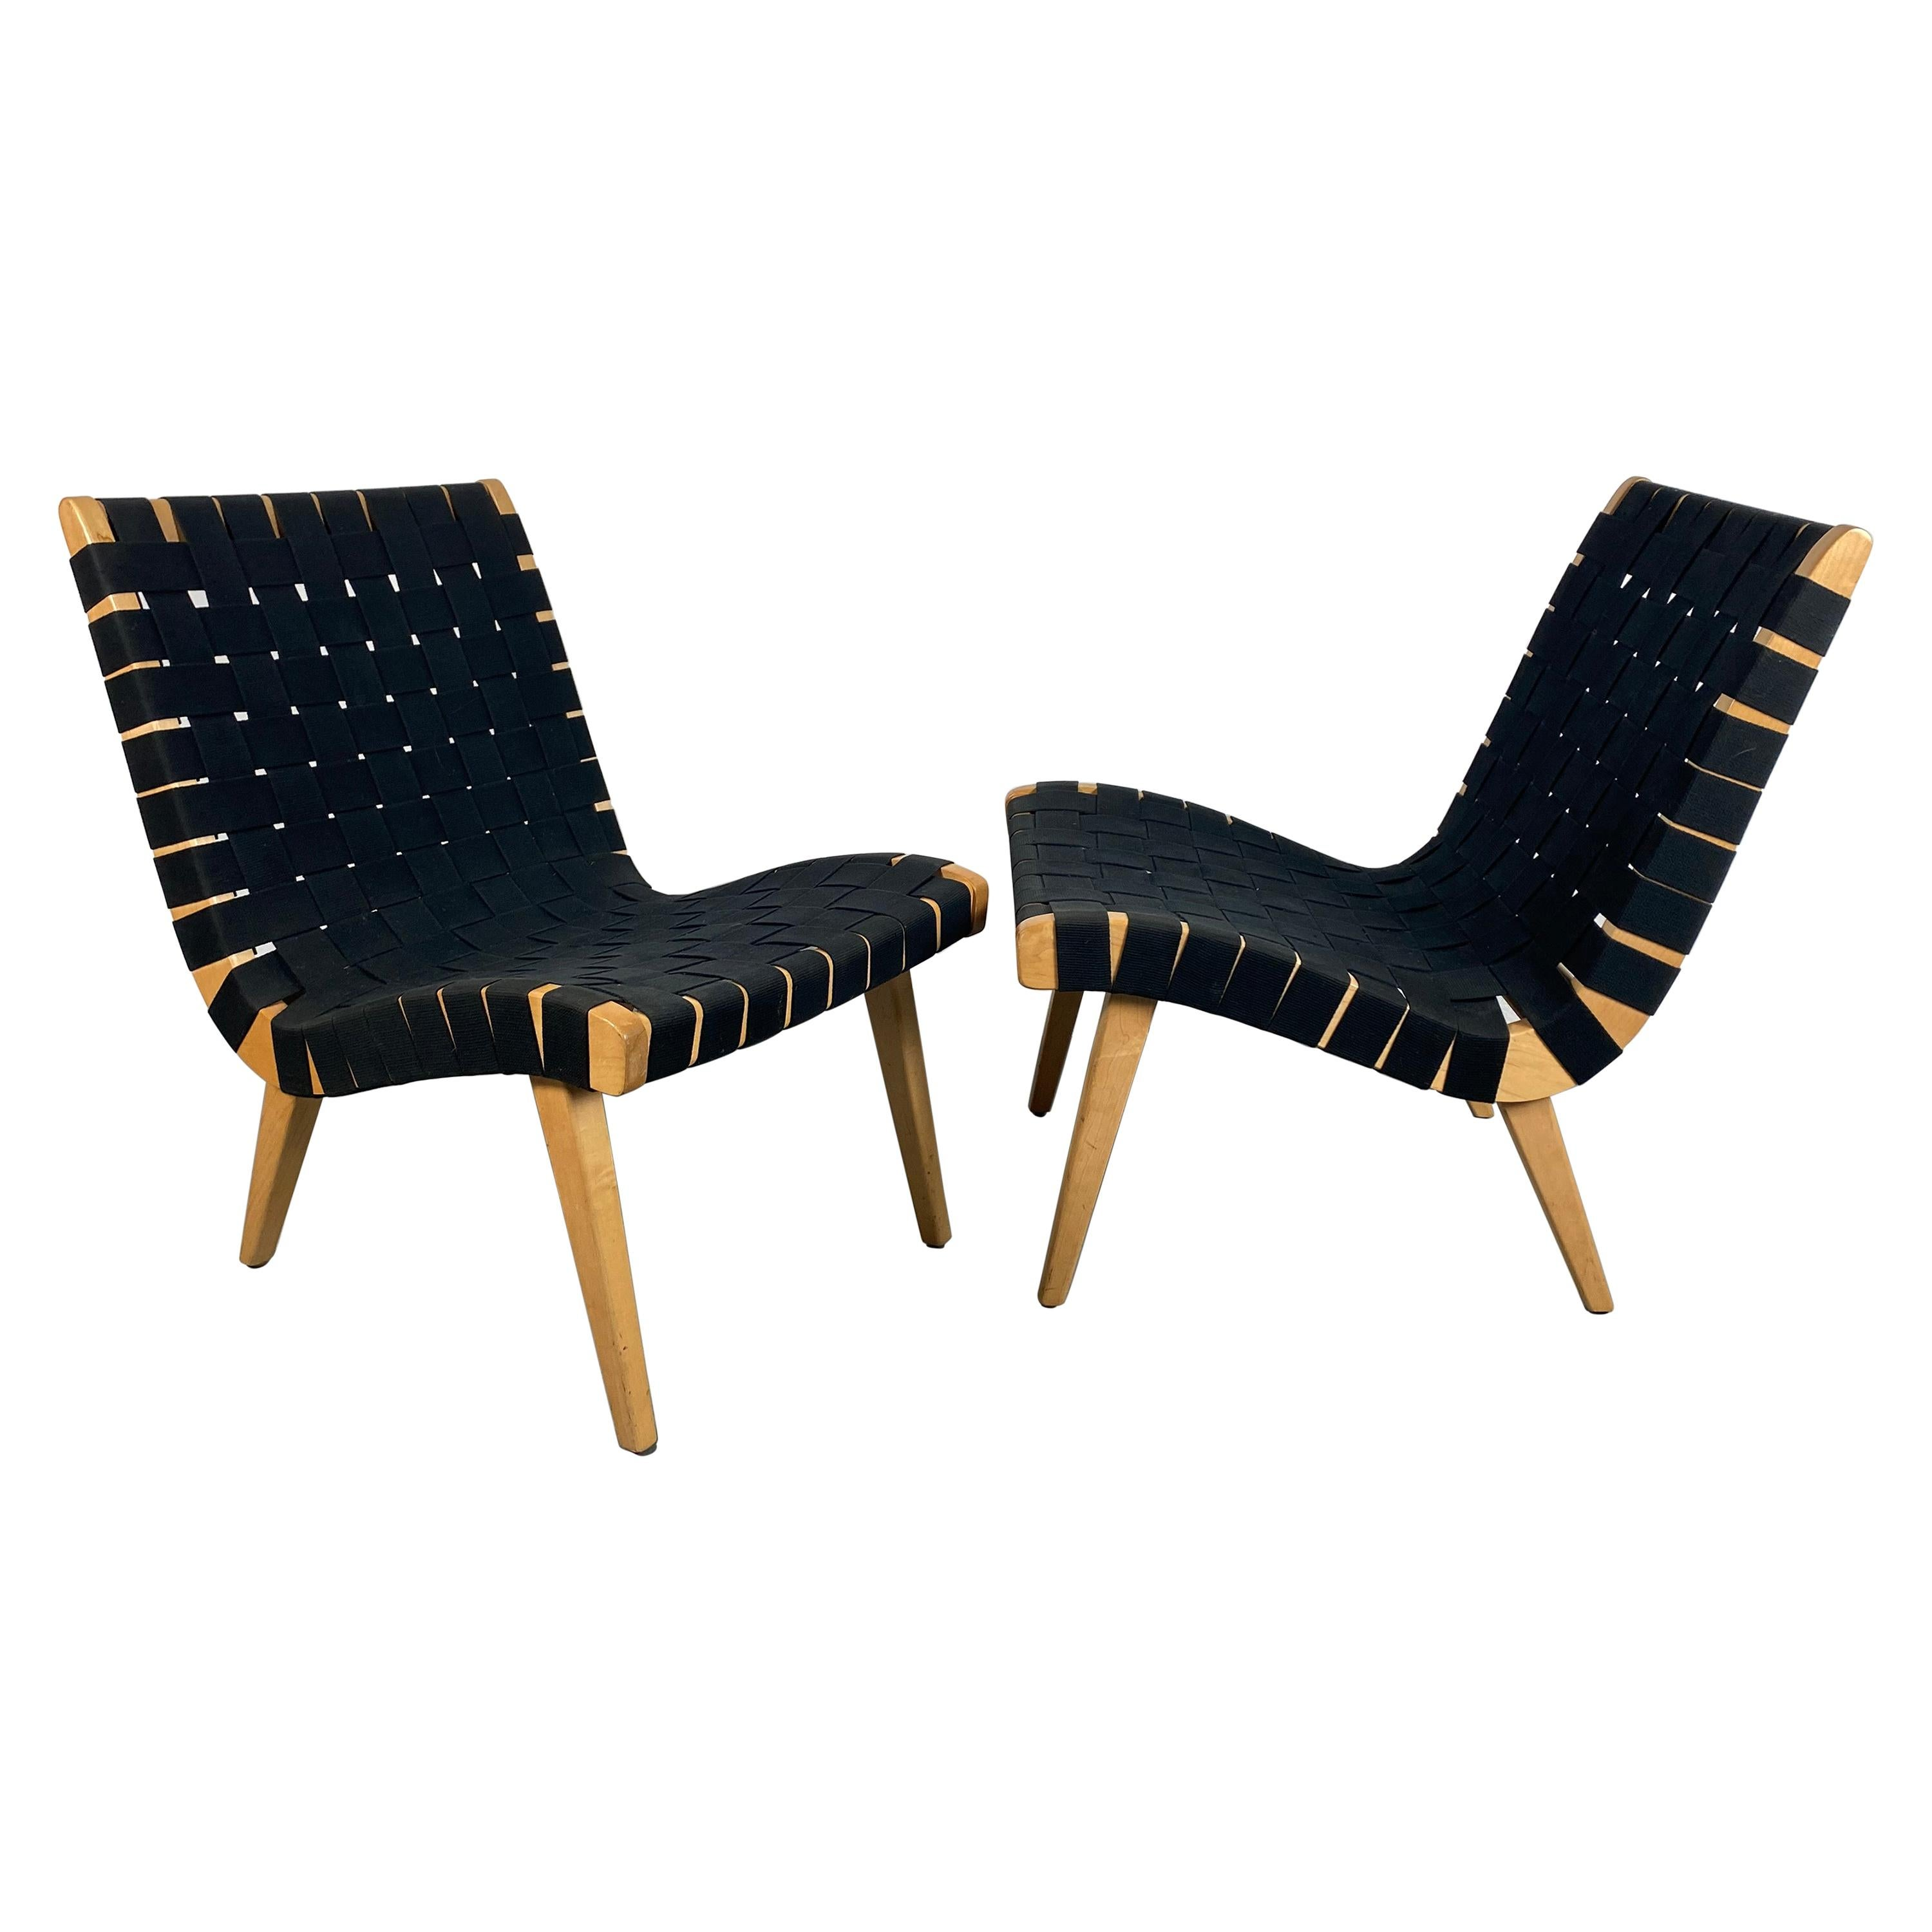 Pair of Jens Risom Webbed Lounge Chairs, Risom / Knoll, Classic Modernist